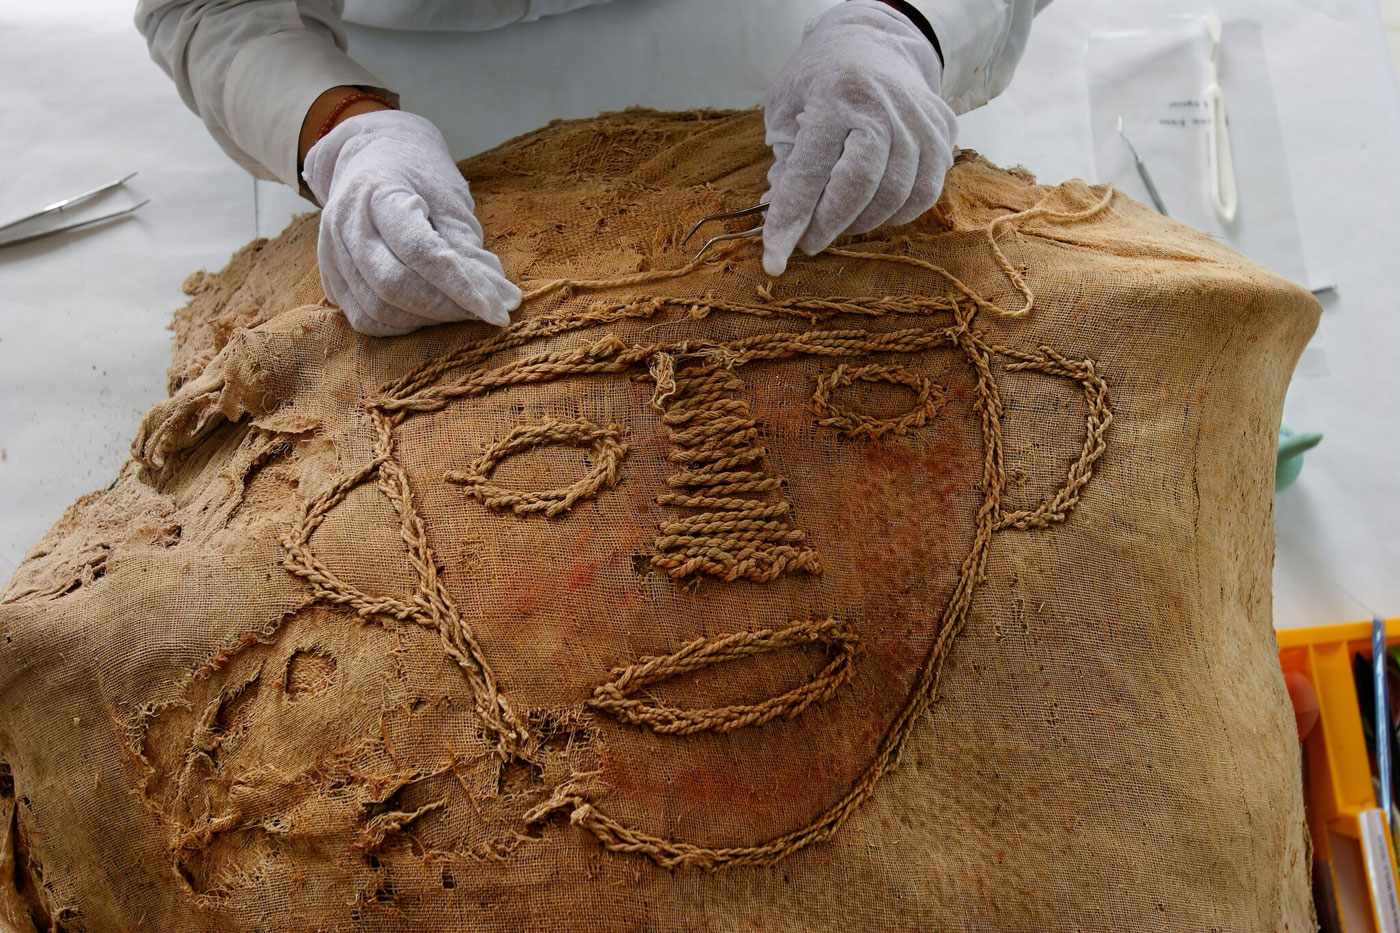 """The mummy bundle of the woman discovered at El Brujo included a surprising detail not typically found in Moche burials. Adorning her funerary bundle was an embroidered face (pictured). To start the delicate process of unwrapping the mummy for study, textile expert Arabel Fernández López carefully removed the stitches. """"I think the face humanized the bundle and reminded mourners that this was no ordinary person,"""" Fernandez says."""